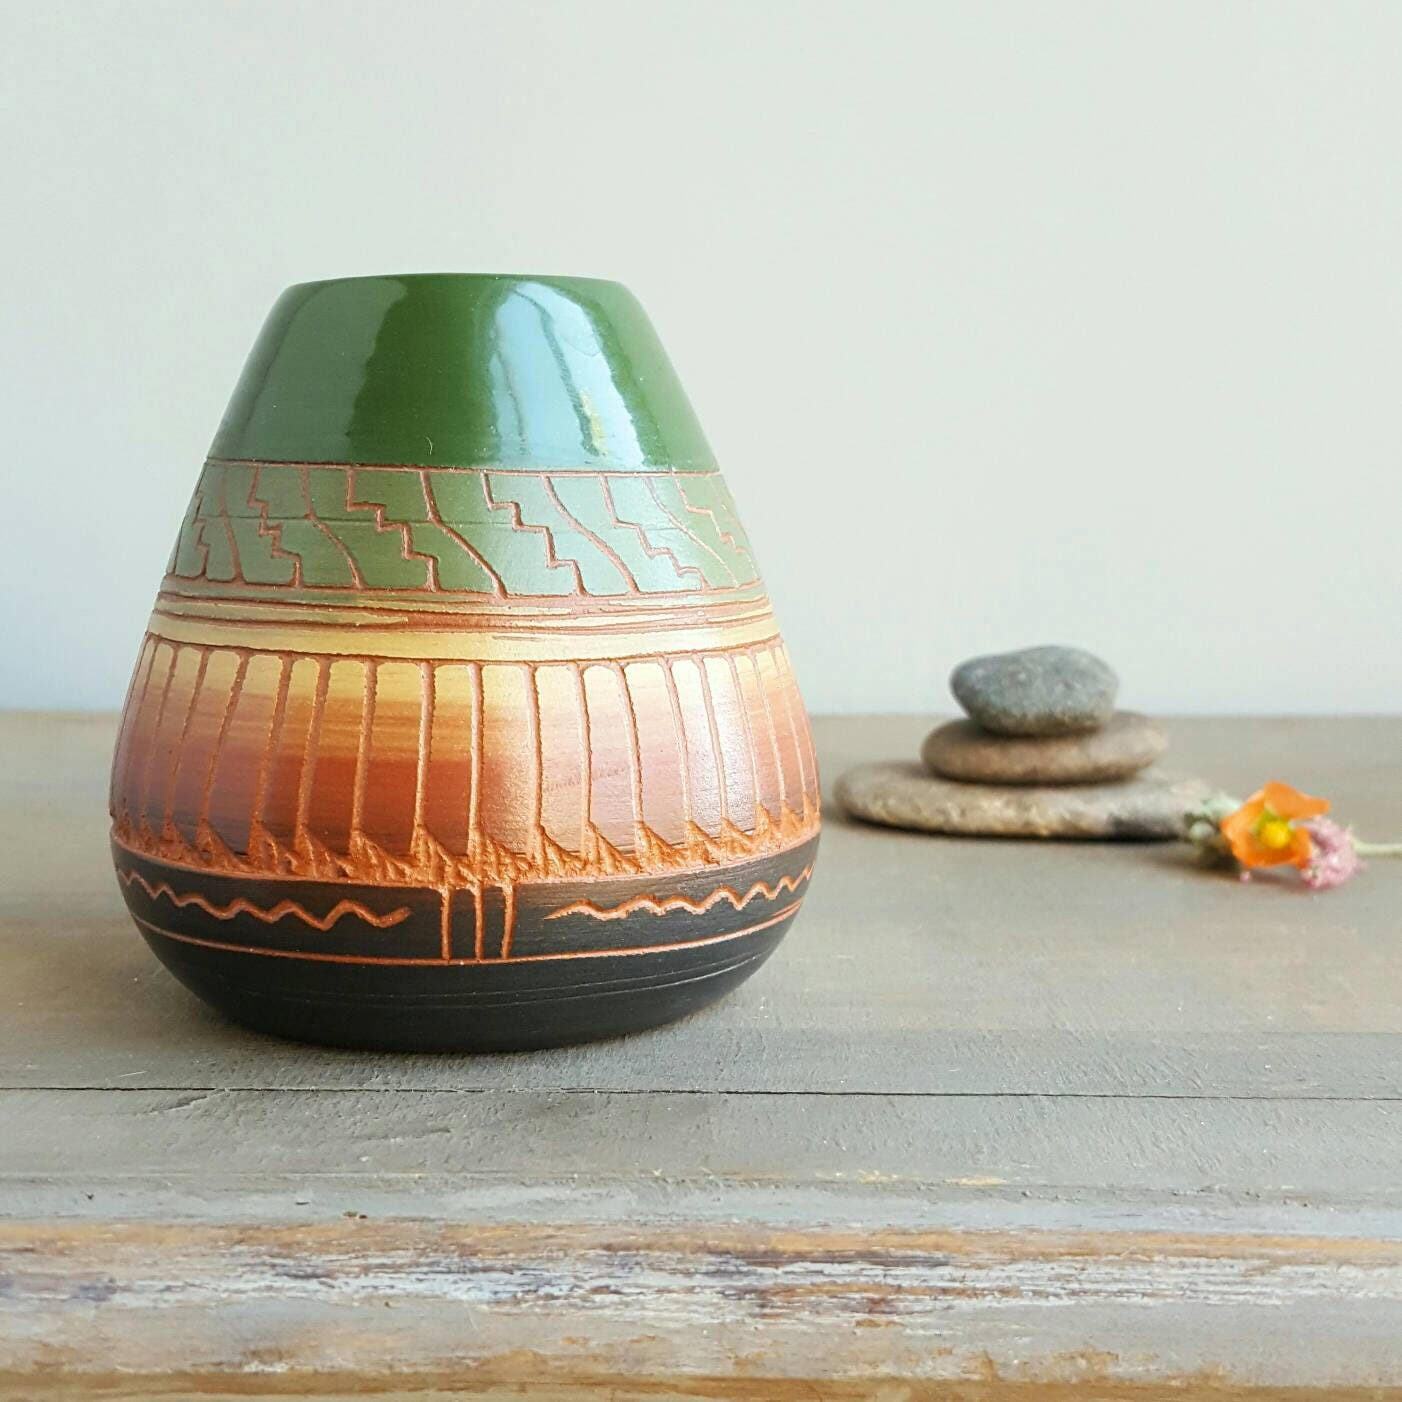 Navajo dine etched pottery pot vintage native american ceramic navajo dine etched pottery pot vintage native american ceramic vase hand painted with colorful glaze and tribal motifs southwest decor reviewsmspy